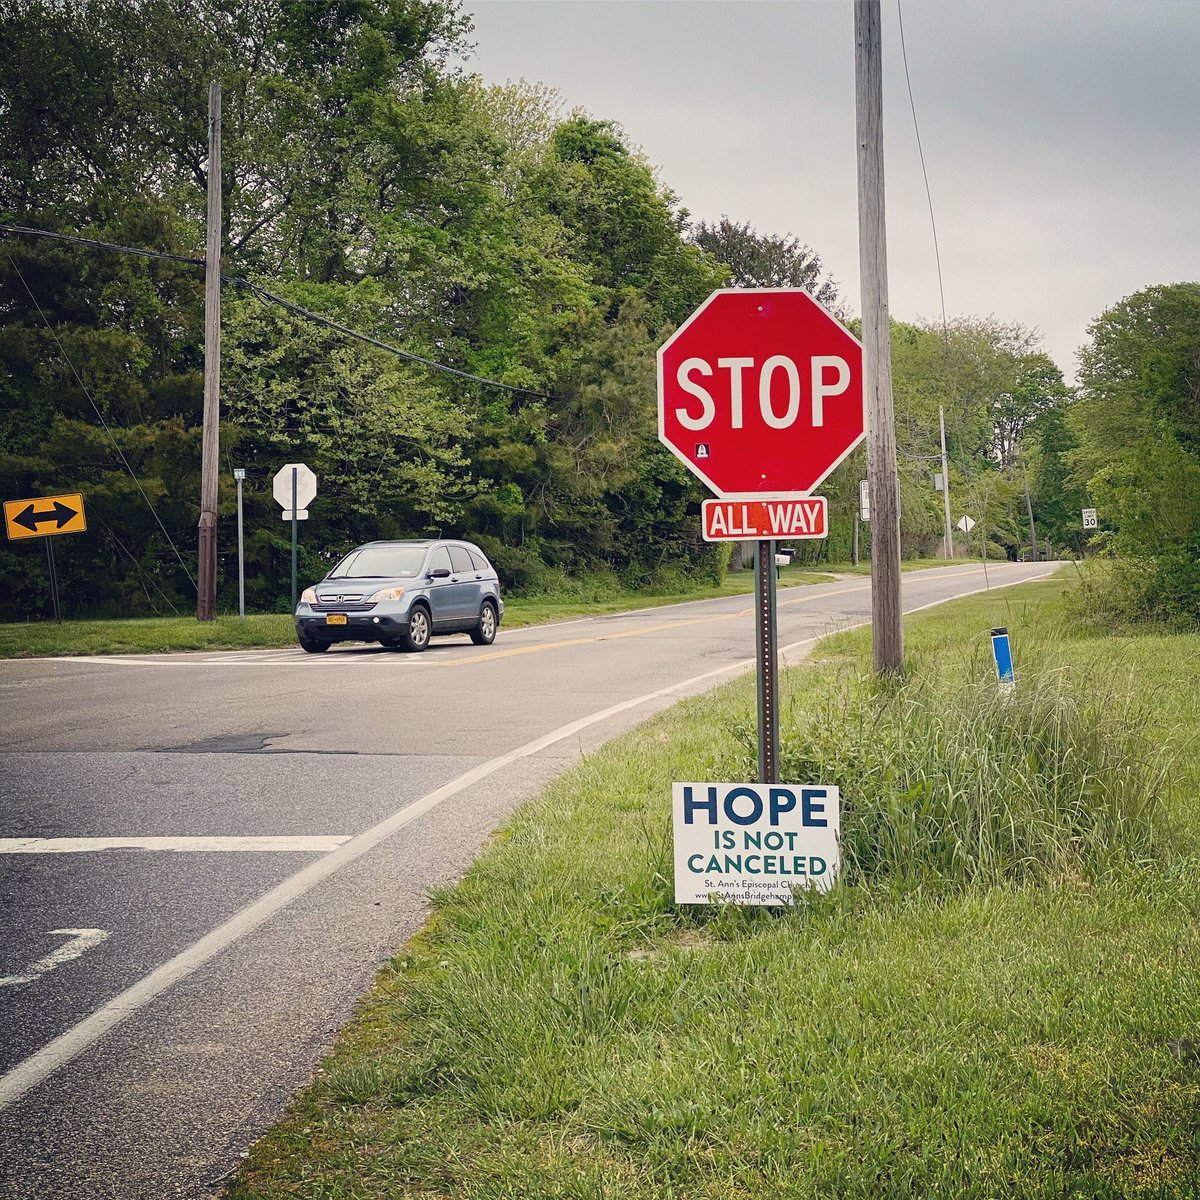 """Hope is not cancelled"" #watermill #newyork #signs #coronavirus https://t.co/96JiElqrZb"